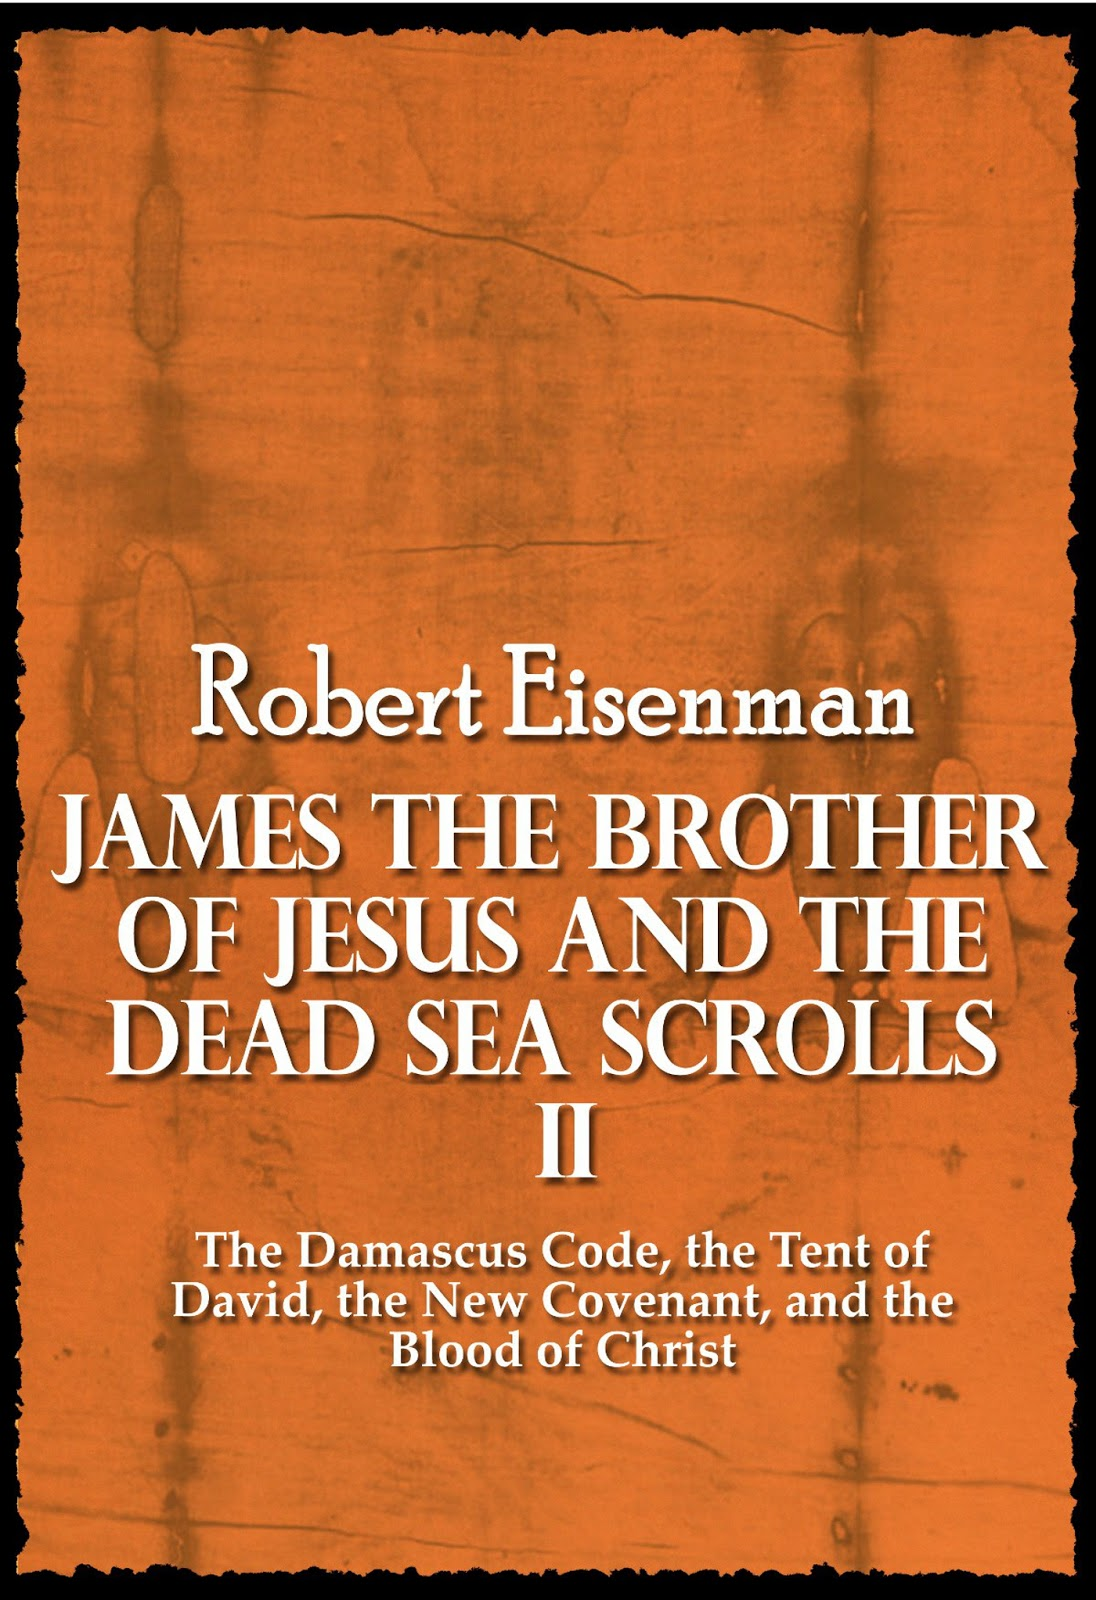 James the Brother of Jesus and the Dead Sea Scrolls Volume II by Robert Eisenman